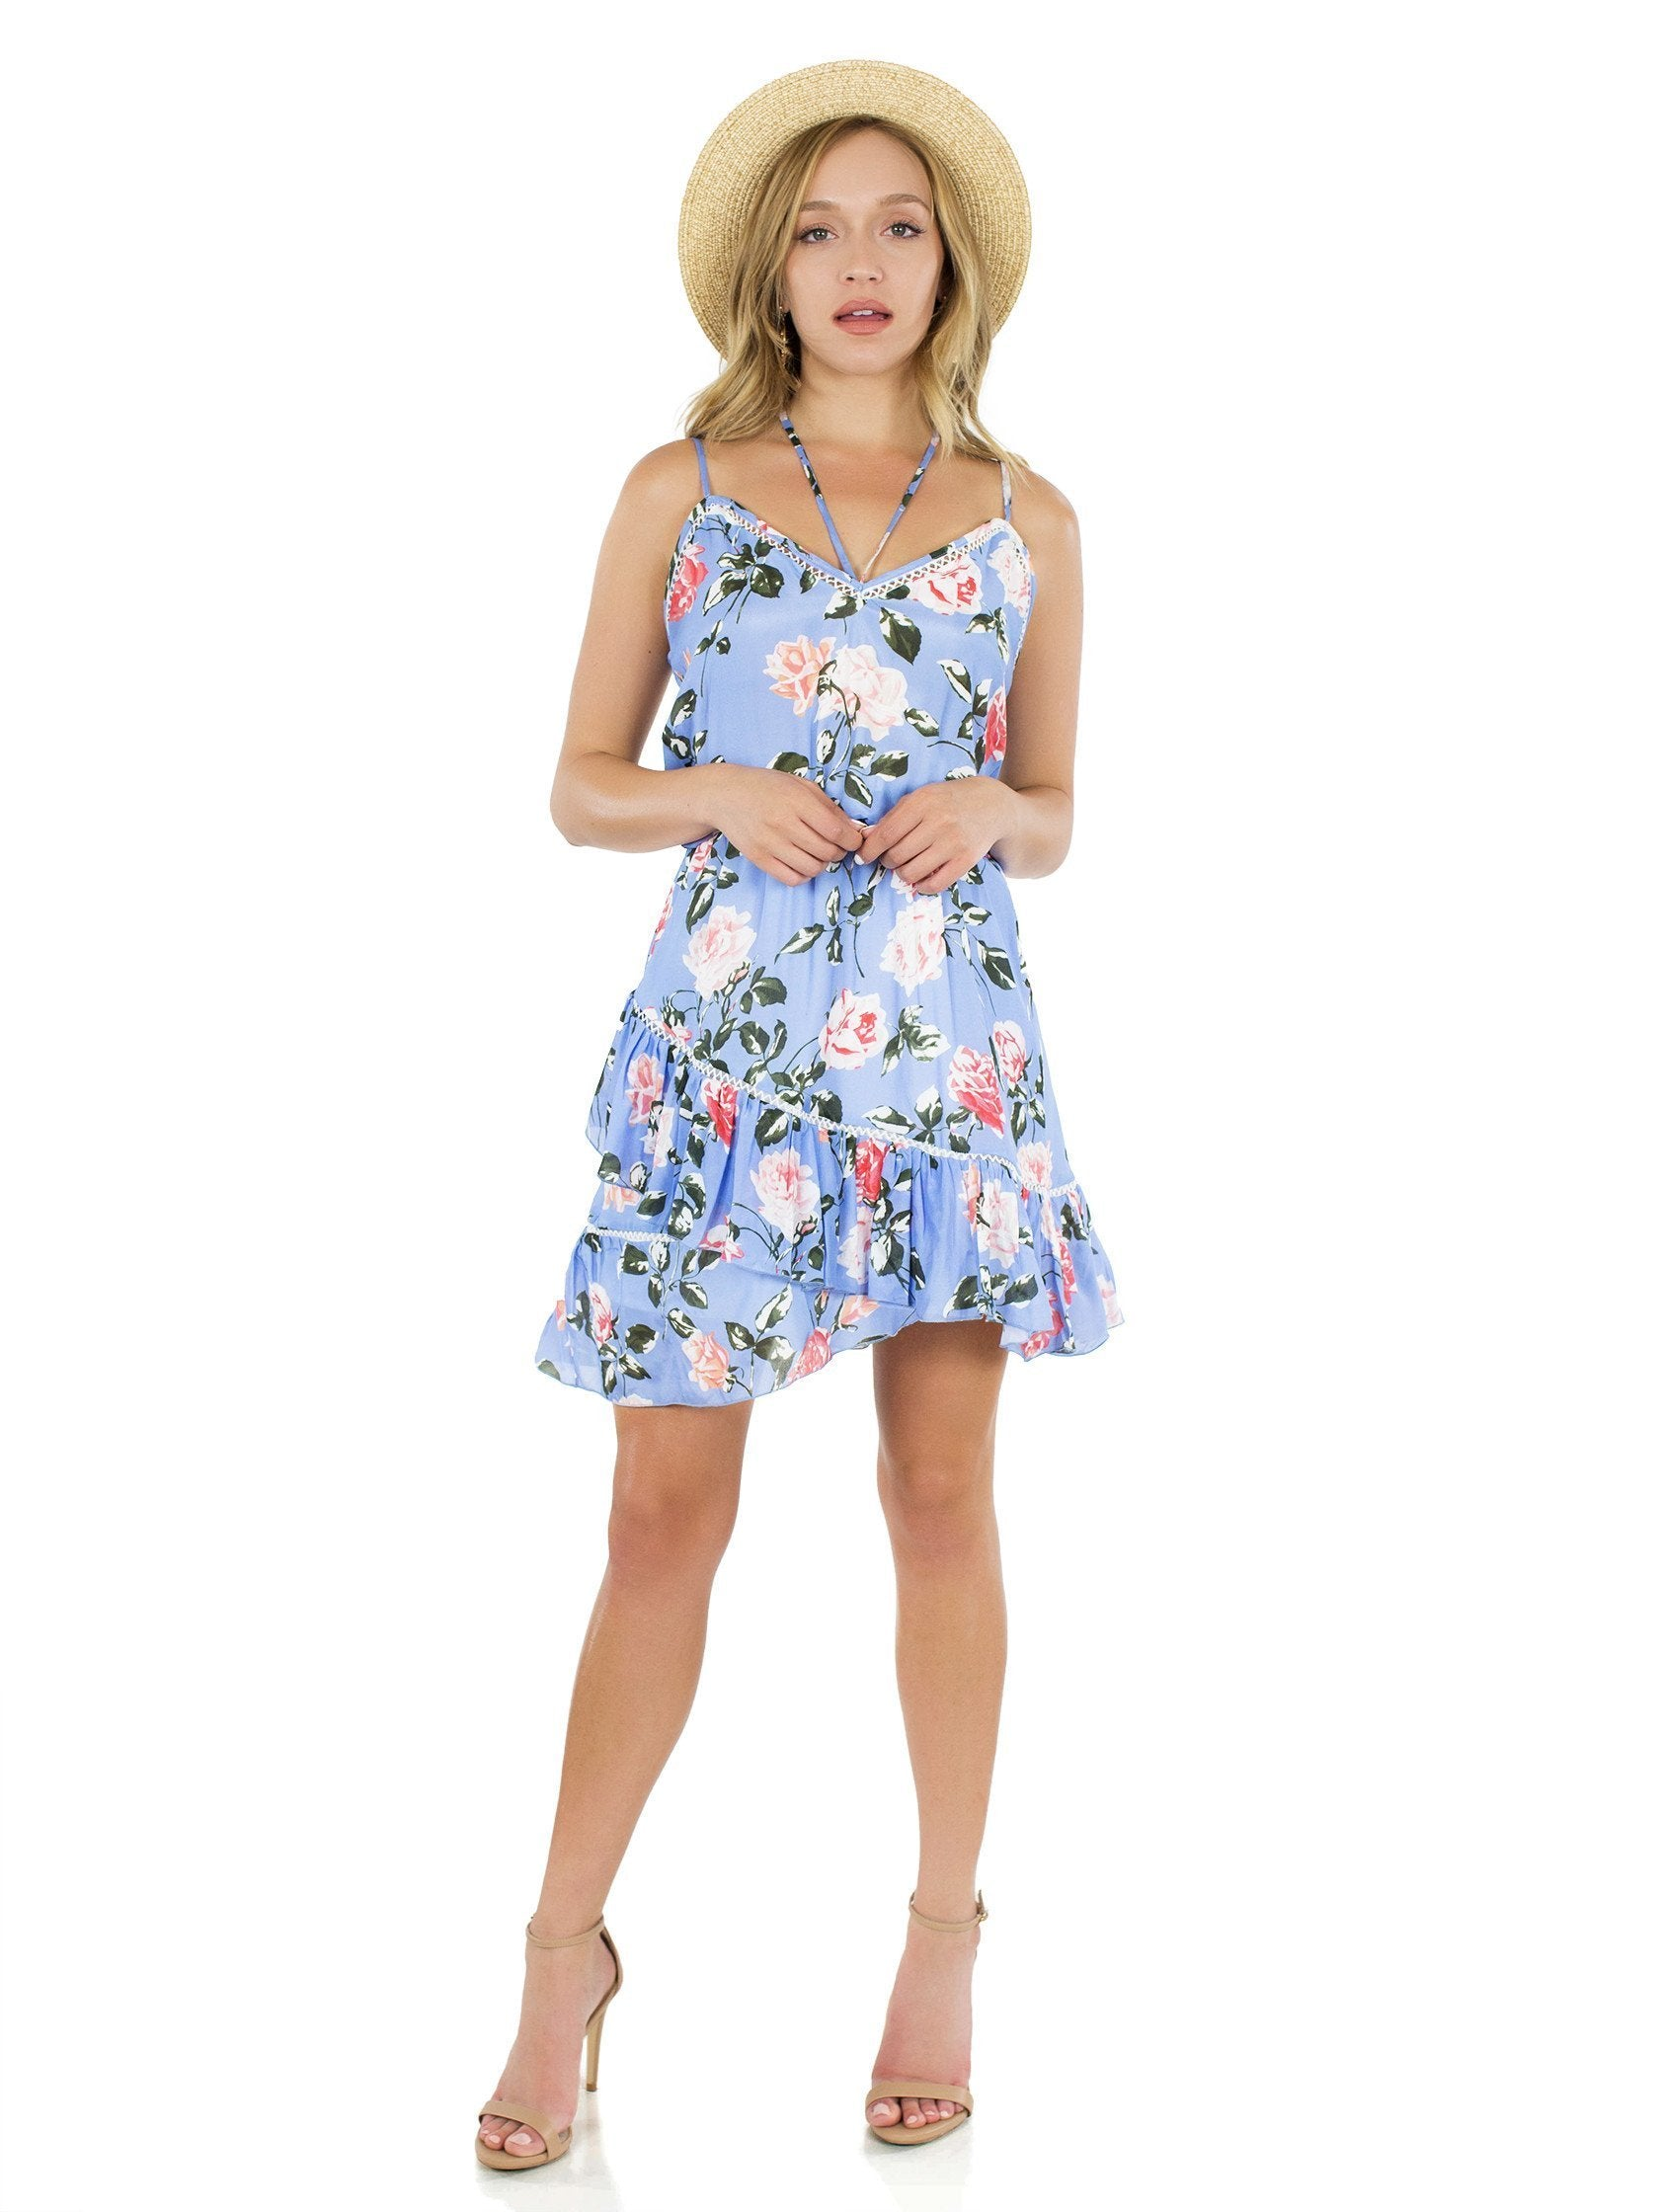 Girl outfit in a dress rental from Karina Grimaldi called Love Print Mini